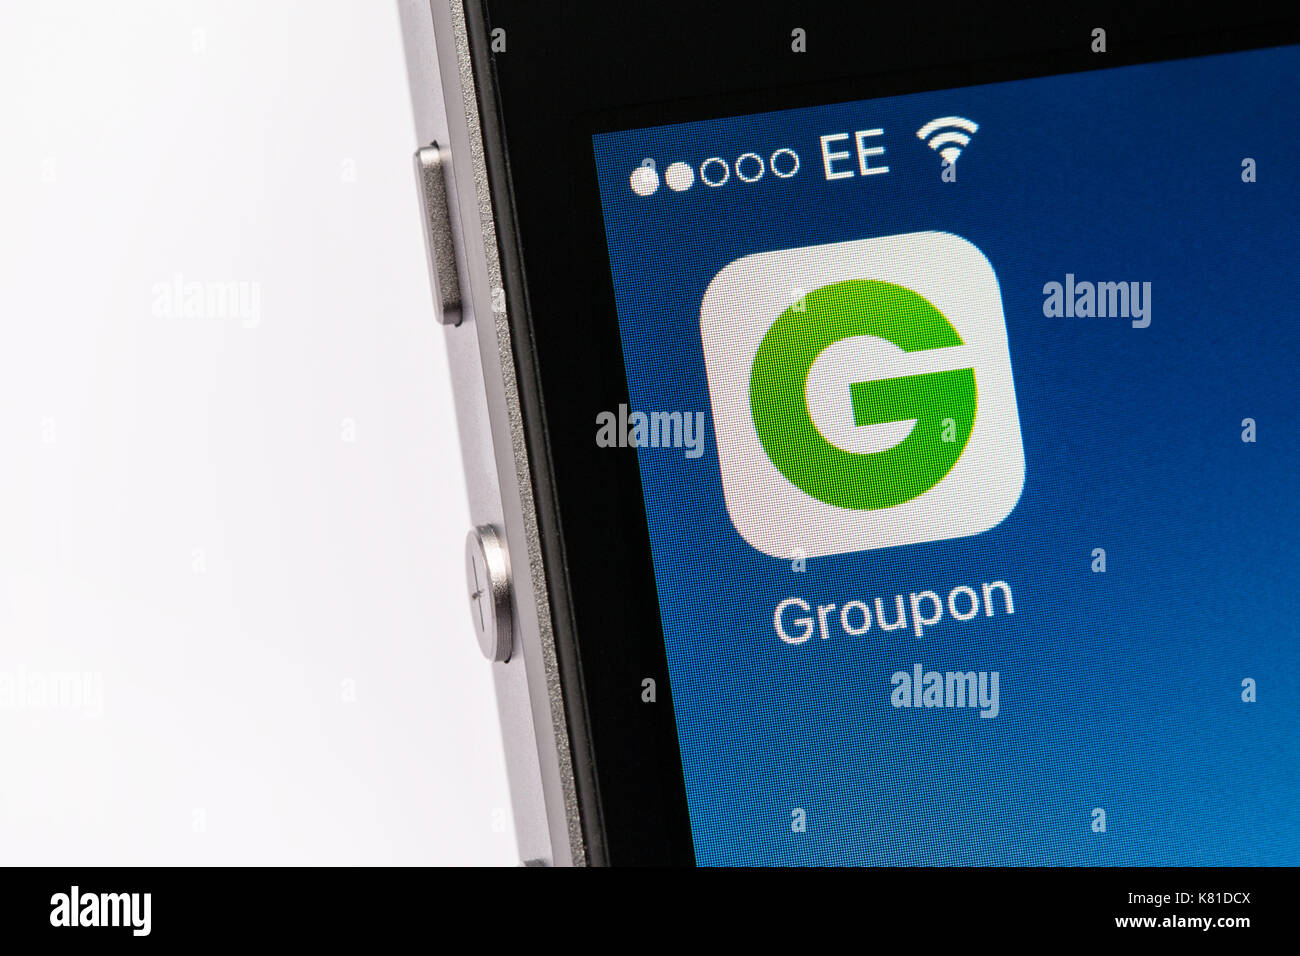 Groupon app stock photos groupon app stock images alamy groupon app on an iphone mobile phone stock image buycottarizona Image collections